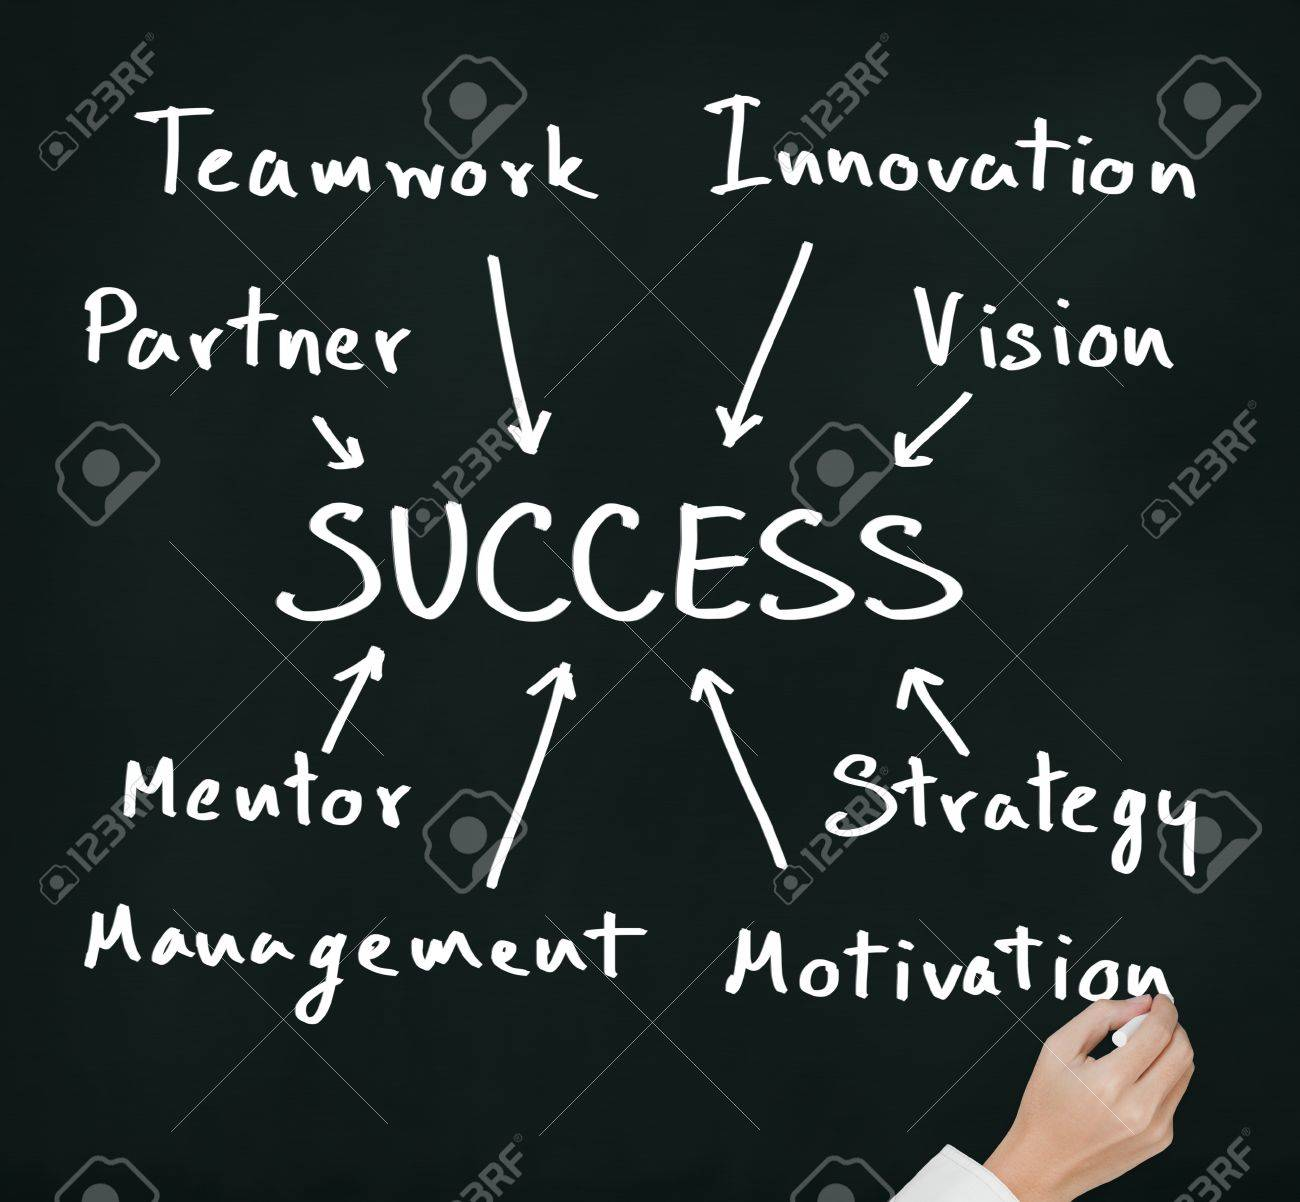 business hand writing success component concept partner stock photo business hand writing success component concept partner teamwork innovation vision mentor management strategy motivation